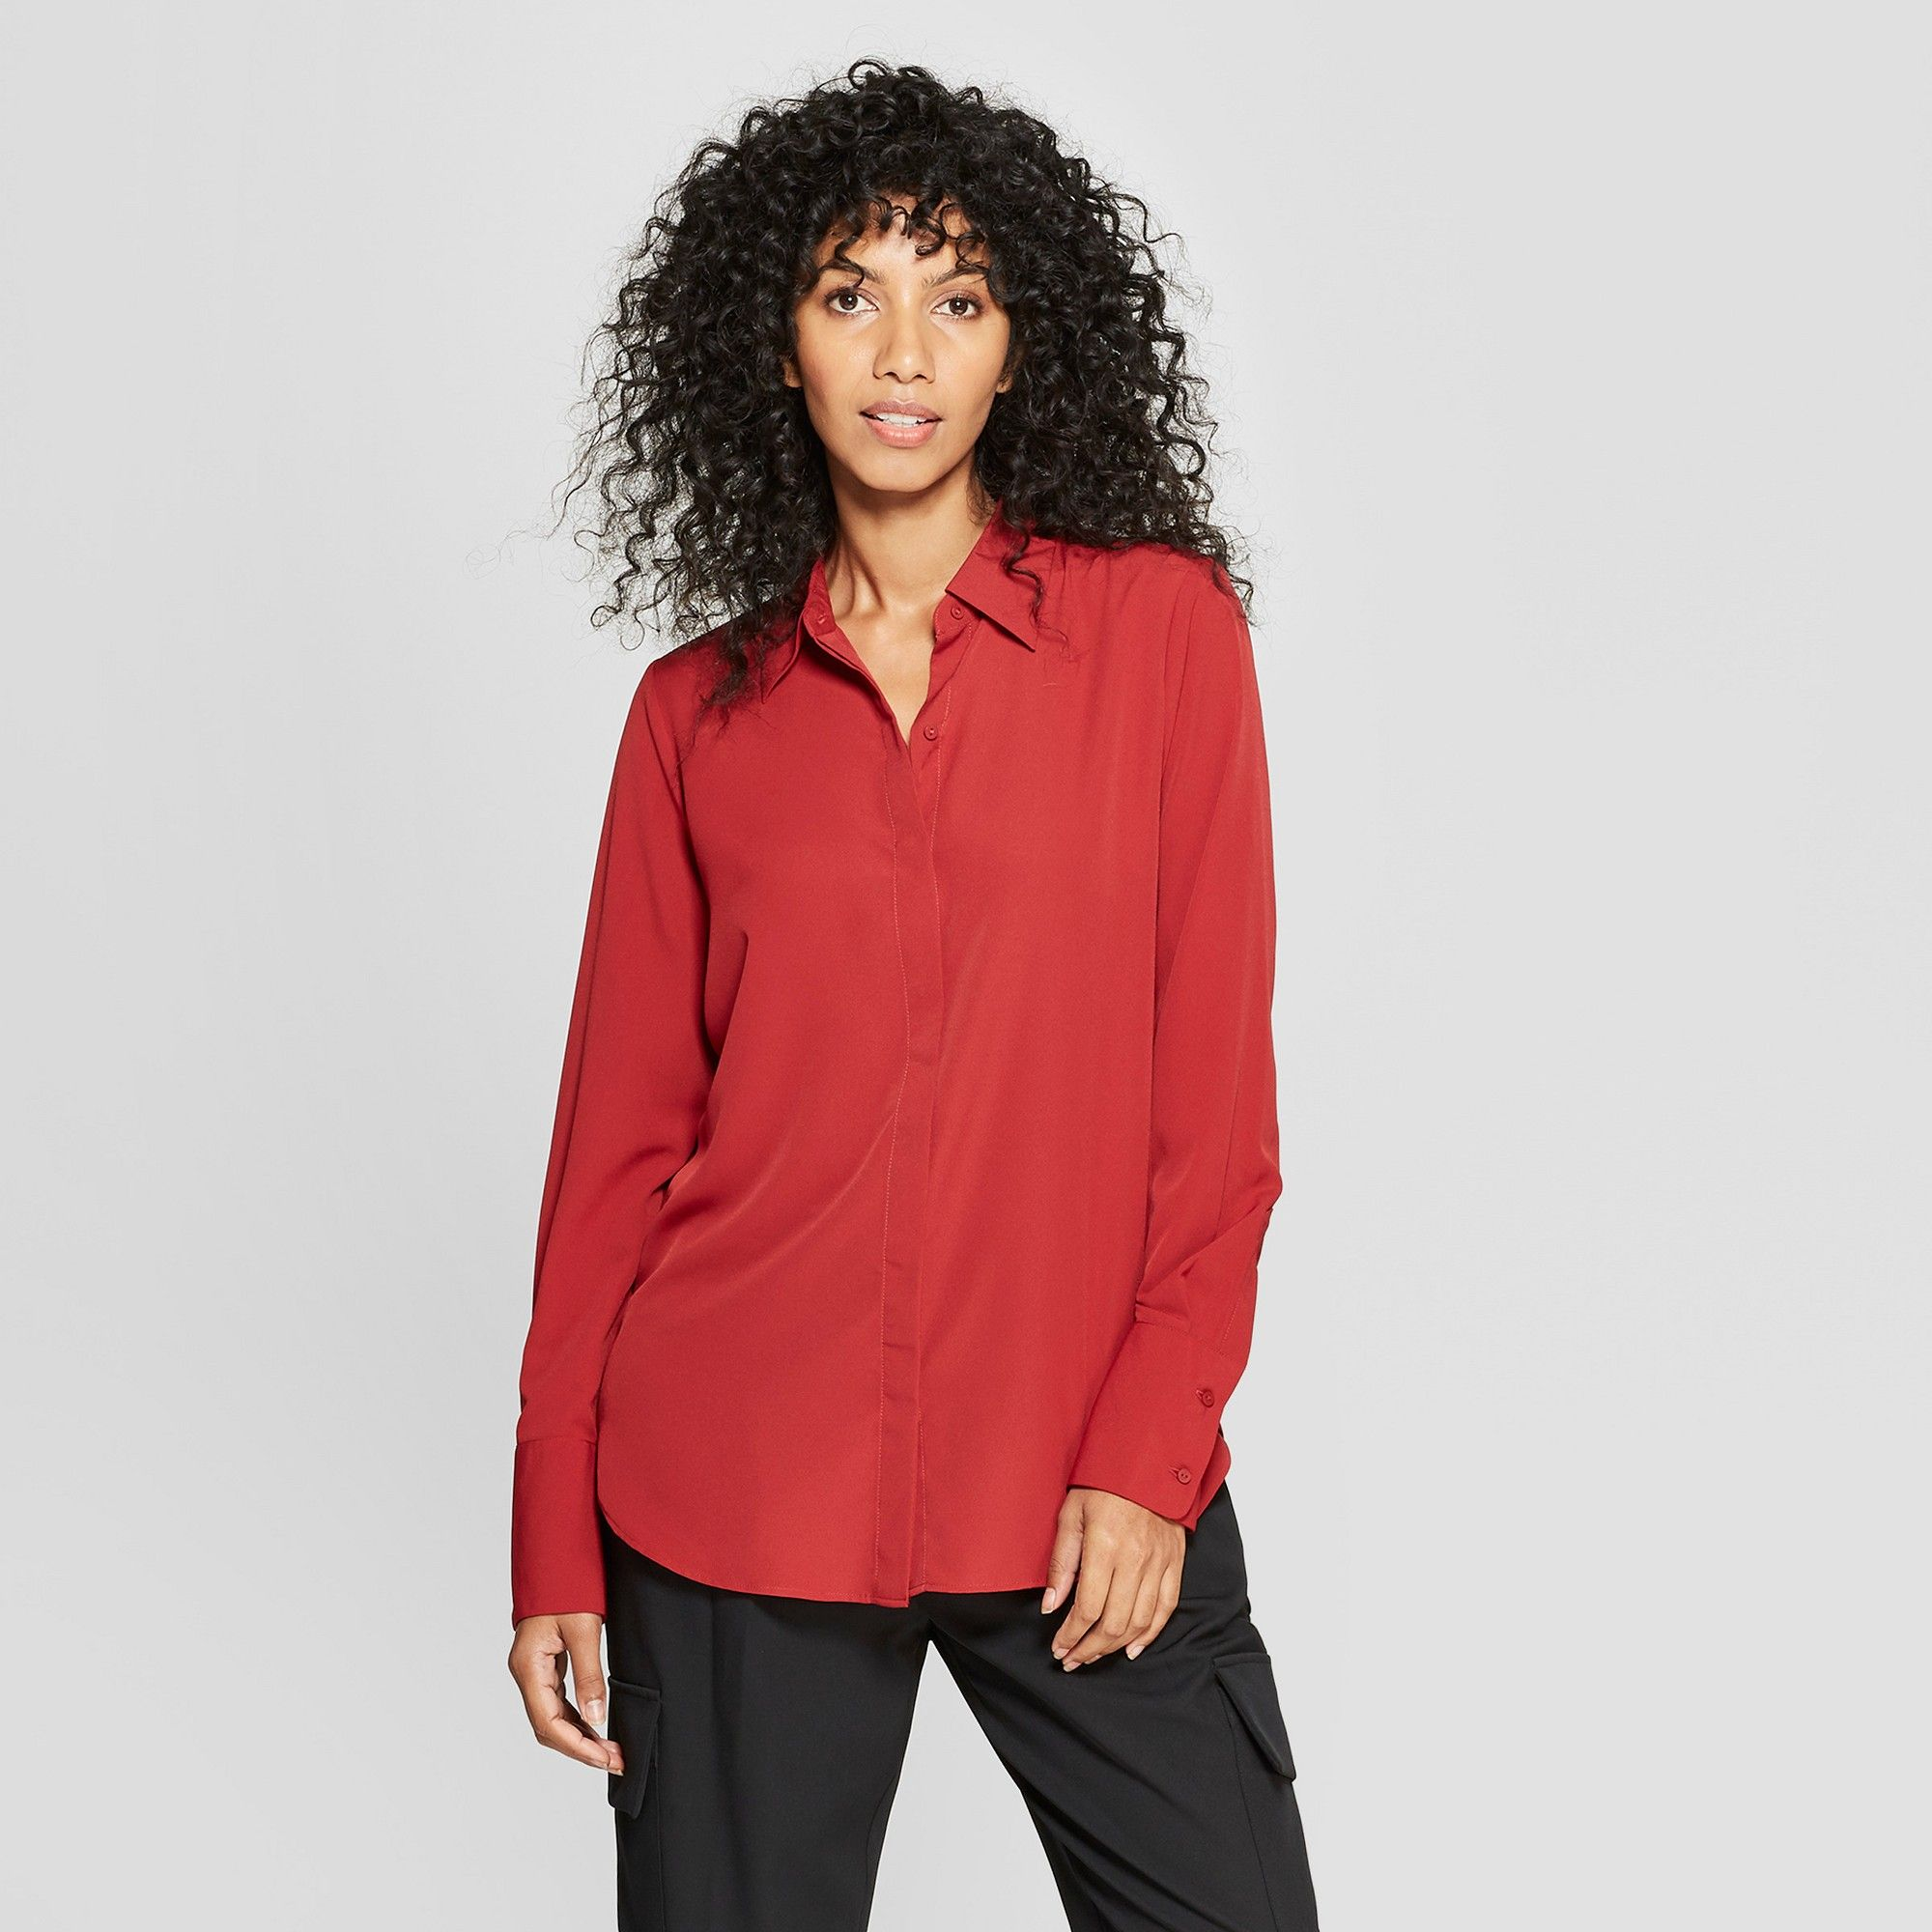 c89934b2c Women's Long Sleeve Collared Button-Down Blouse - Prologue Red Xxl ...